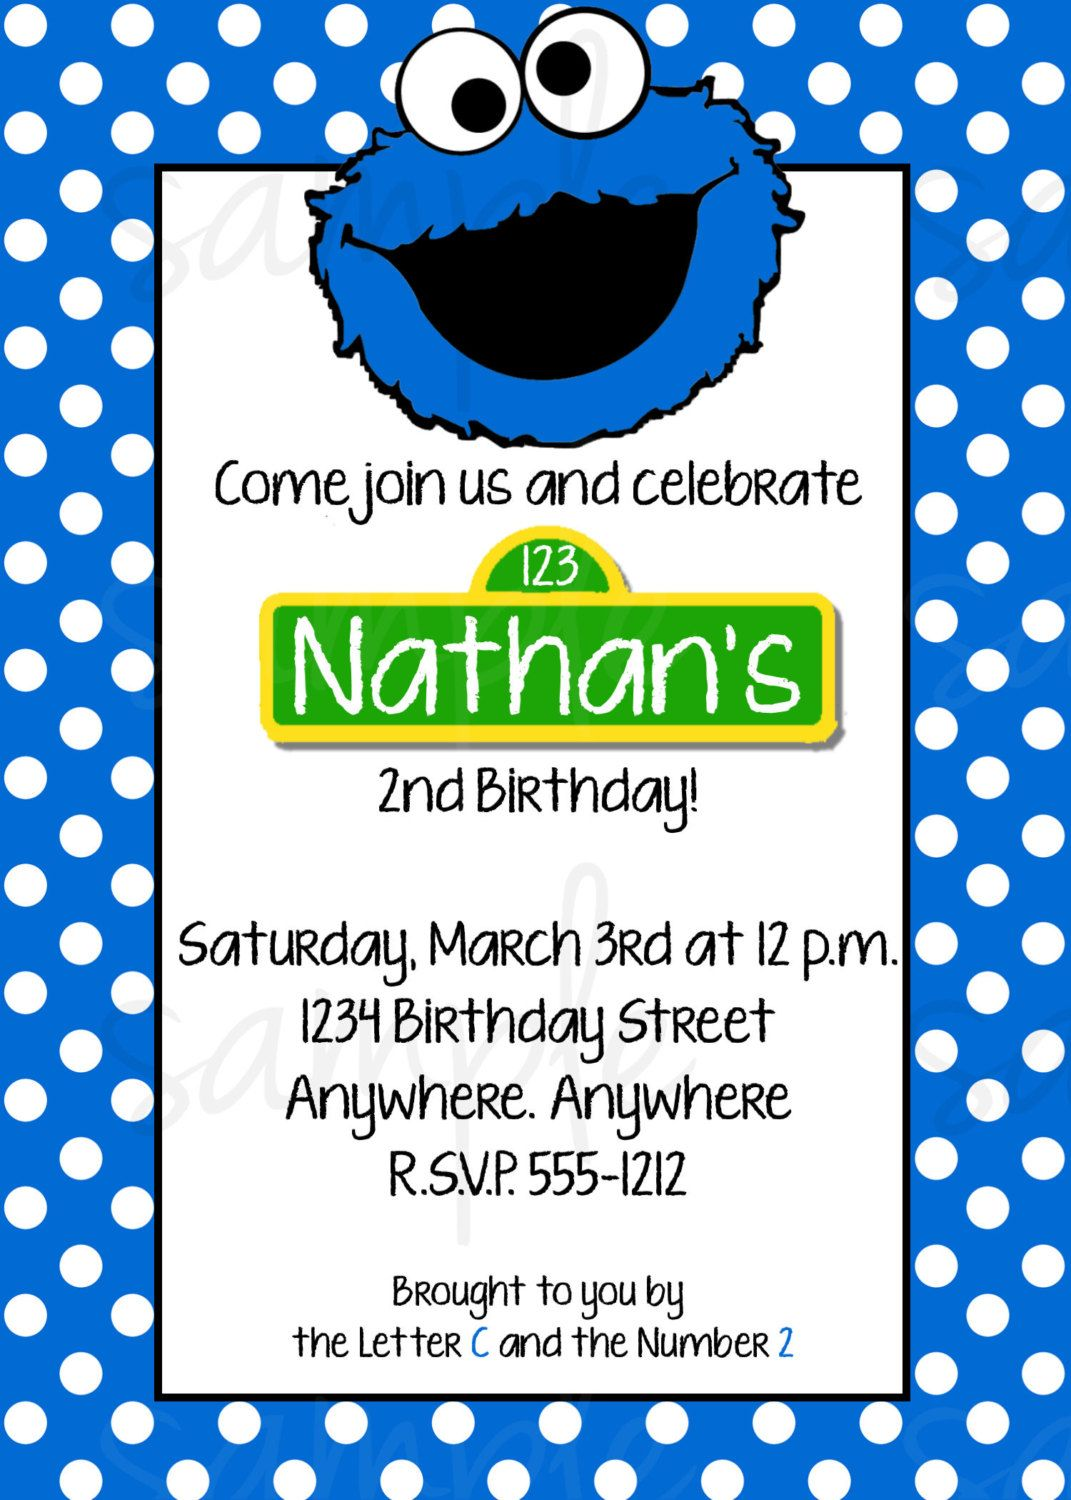 Cookie Monster Birthday Invitation by LoveLifeInvites on Etsy ...